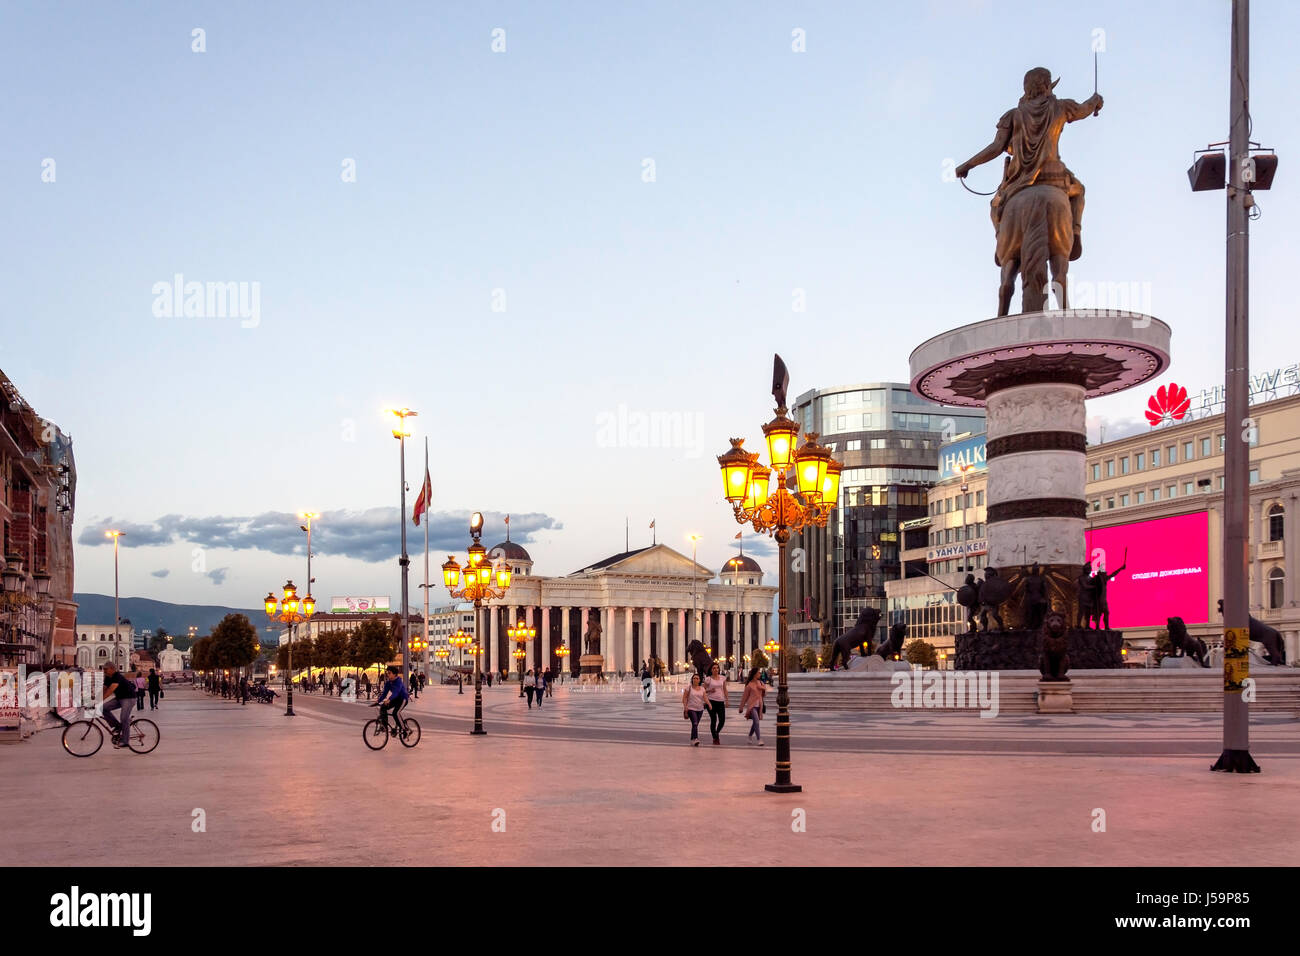 Warrior on a Horse statue and fountains at dusk, Macedonia Square, Skopje, Skopje Region, Republic of Macedonia Stock Photo